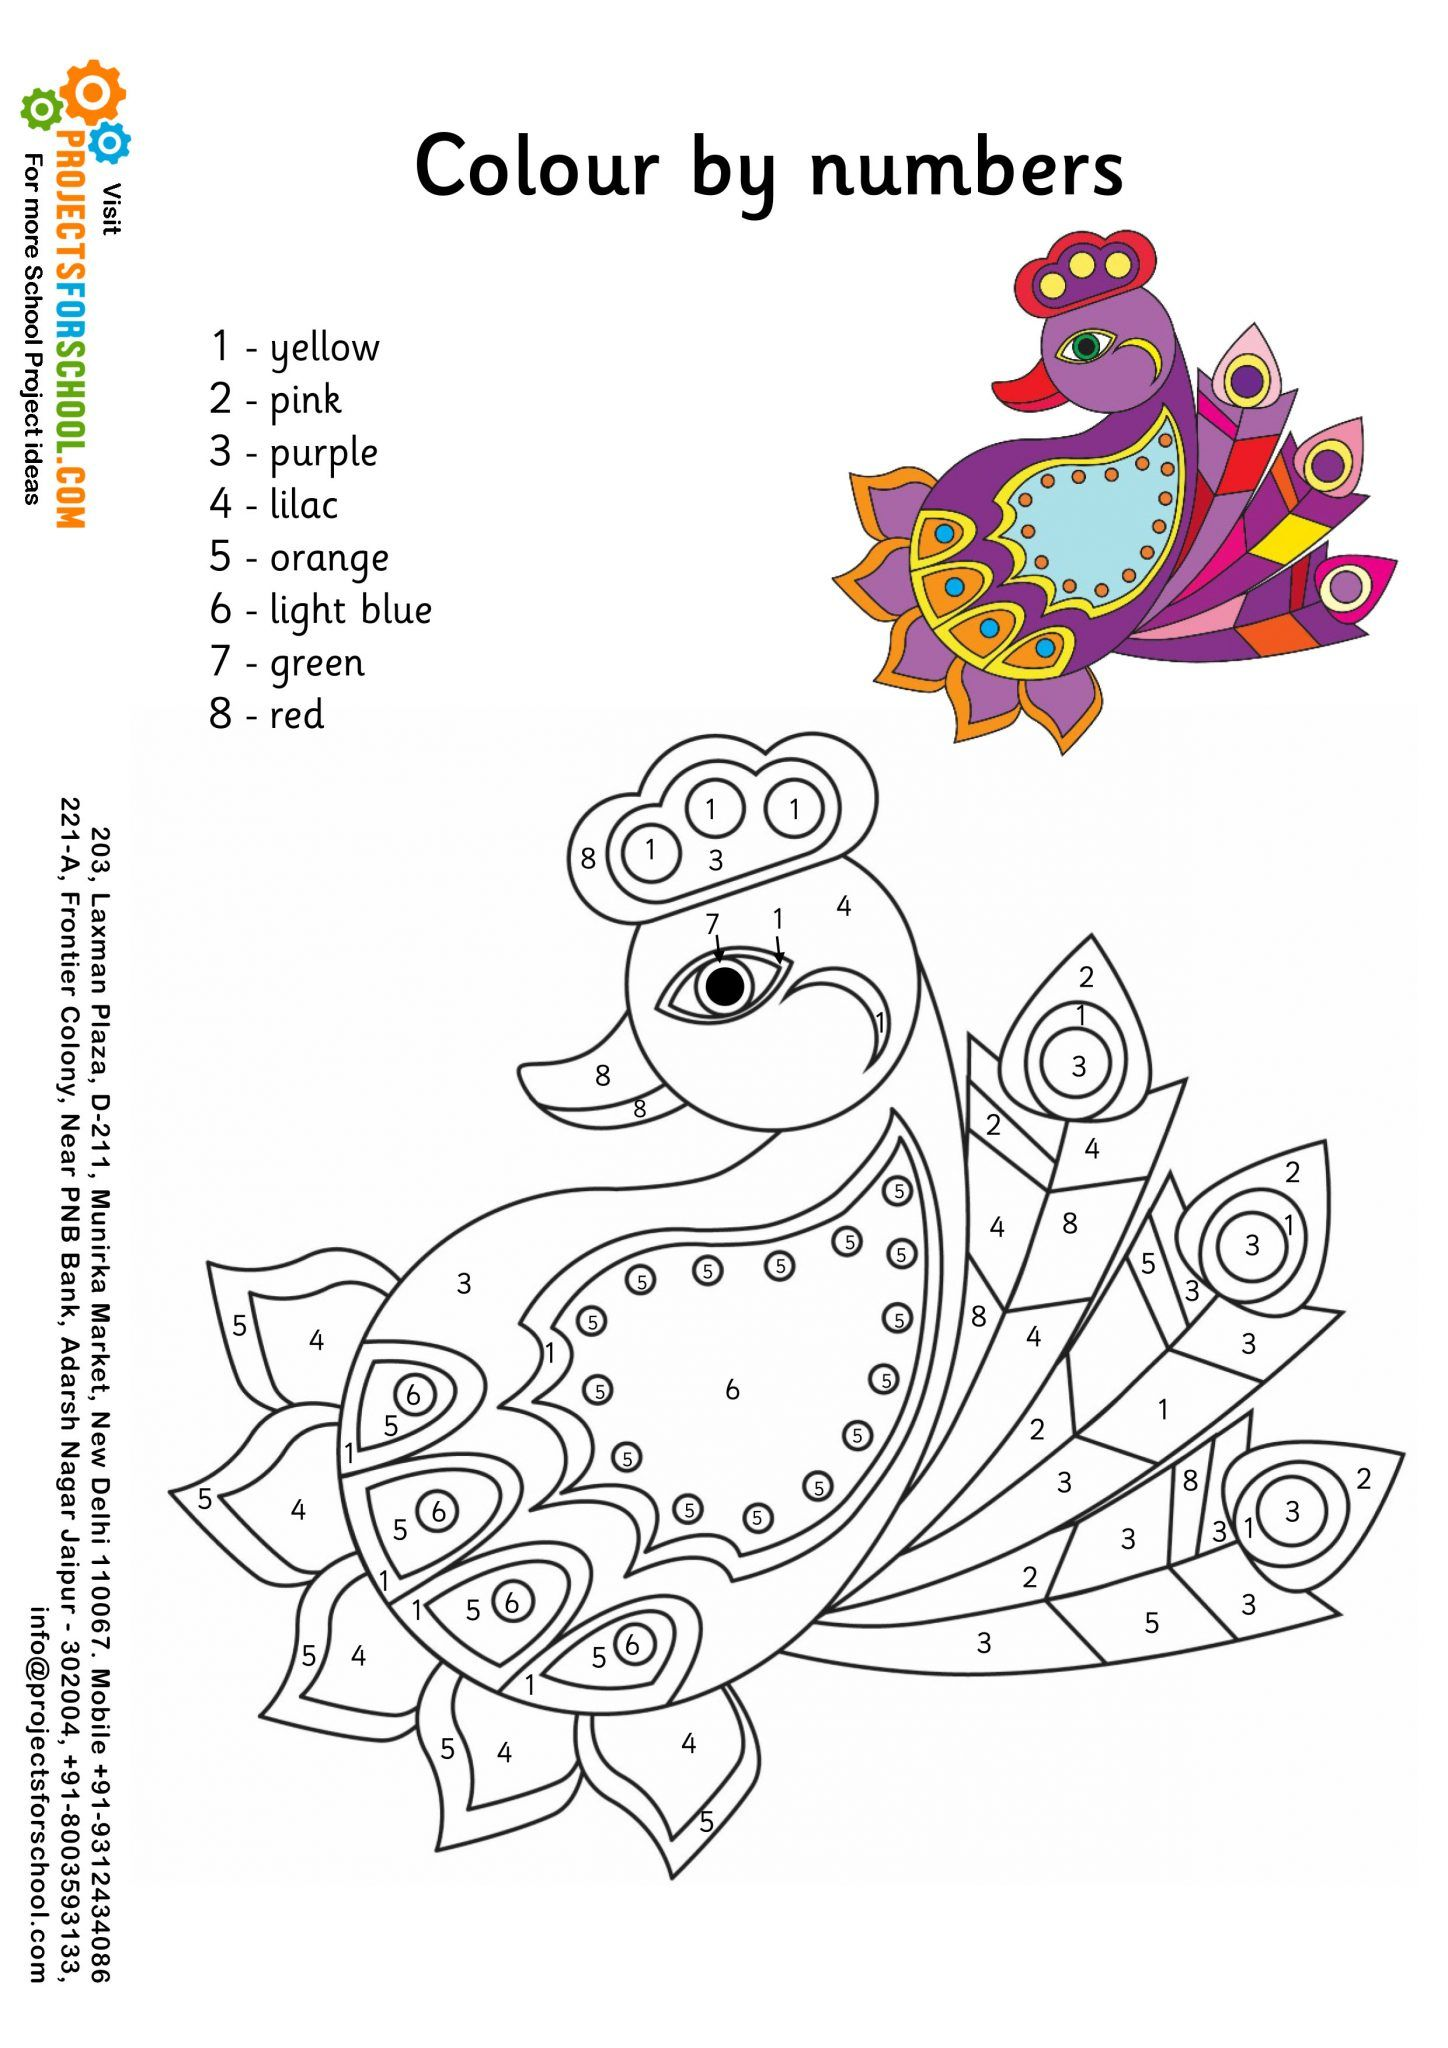 The coloring book project free download - Can The Kids Colour In This Pretty Rangoli Using The Correct Colours According To The Numbers